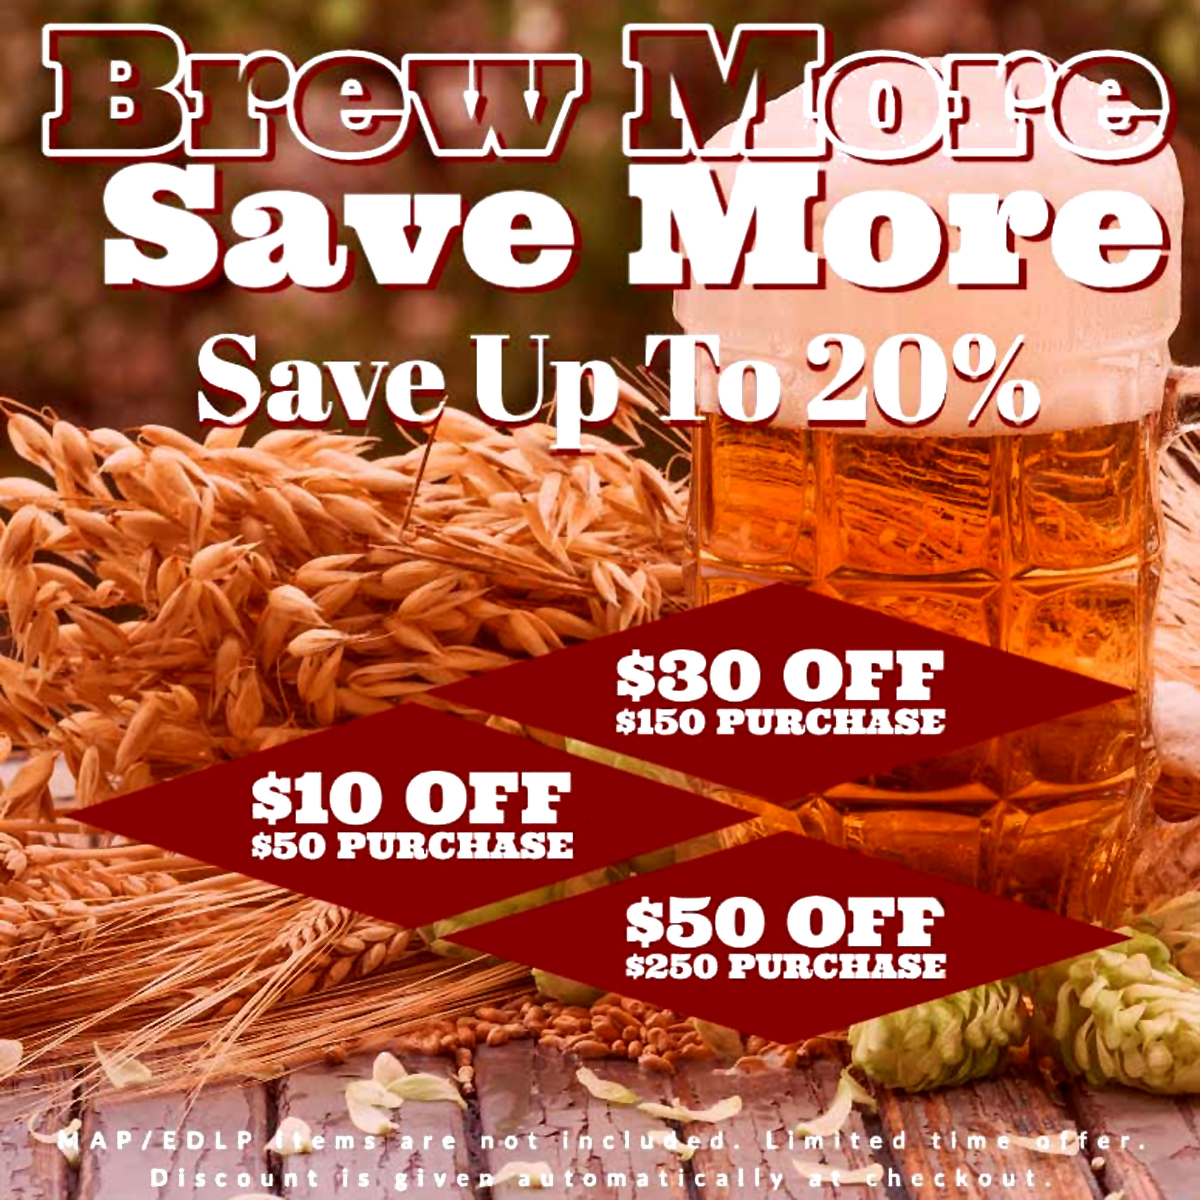 Home Wine Making Coupon Codes for Save $50 On Your Purchase and Get FREE SHIPPING at Aventures in Homebrewing With This Promotion Coupon Code